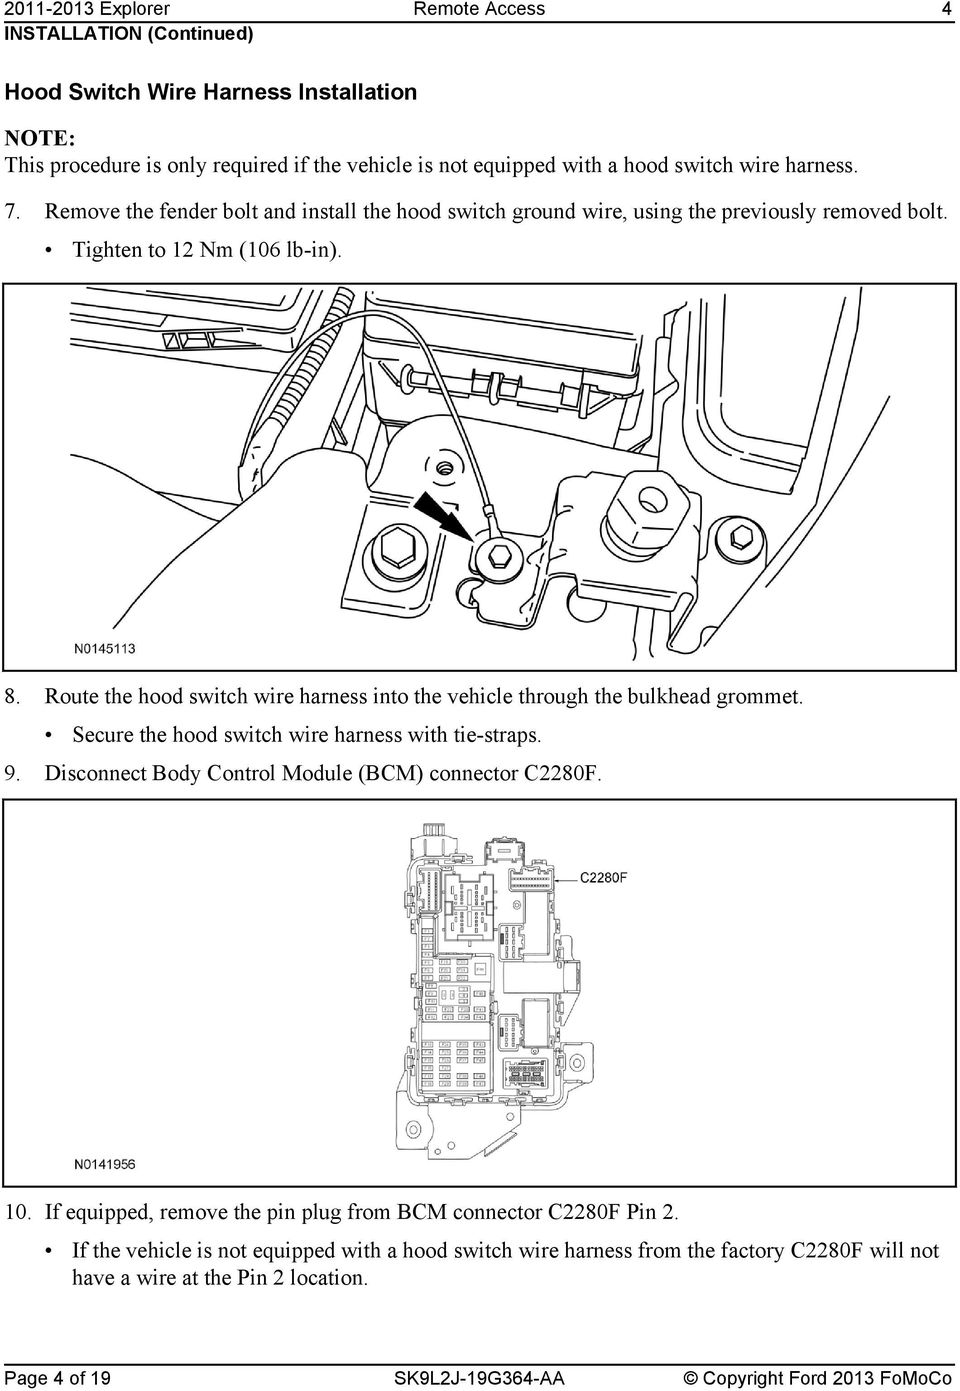 Remote Access System Installation Pdf 2009 Honda Recon Wiring Diagram Route The Hood Switch Wire Harness Into Vehicle Through Bulkhead Grommet Secure